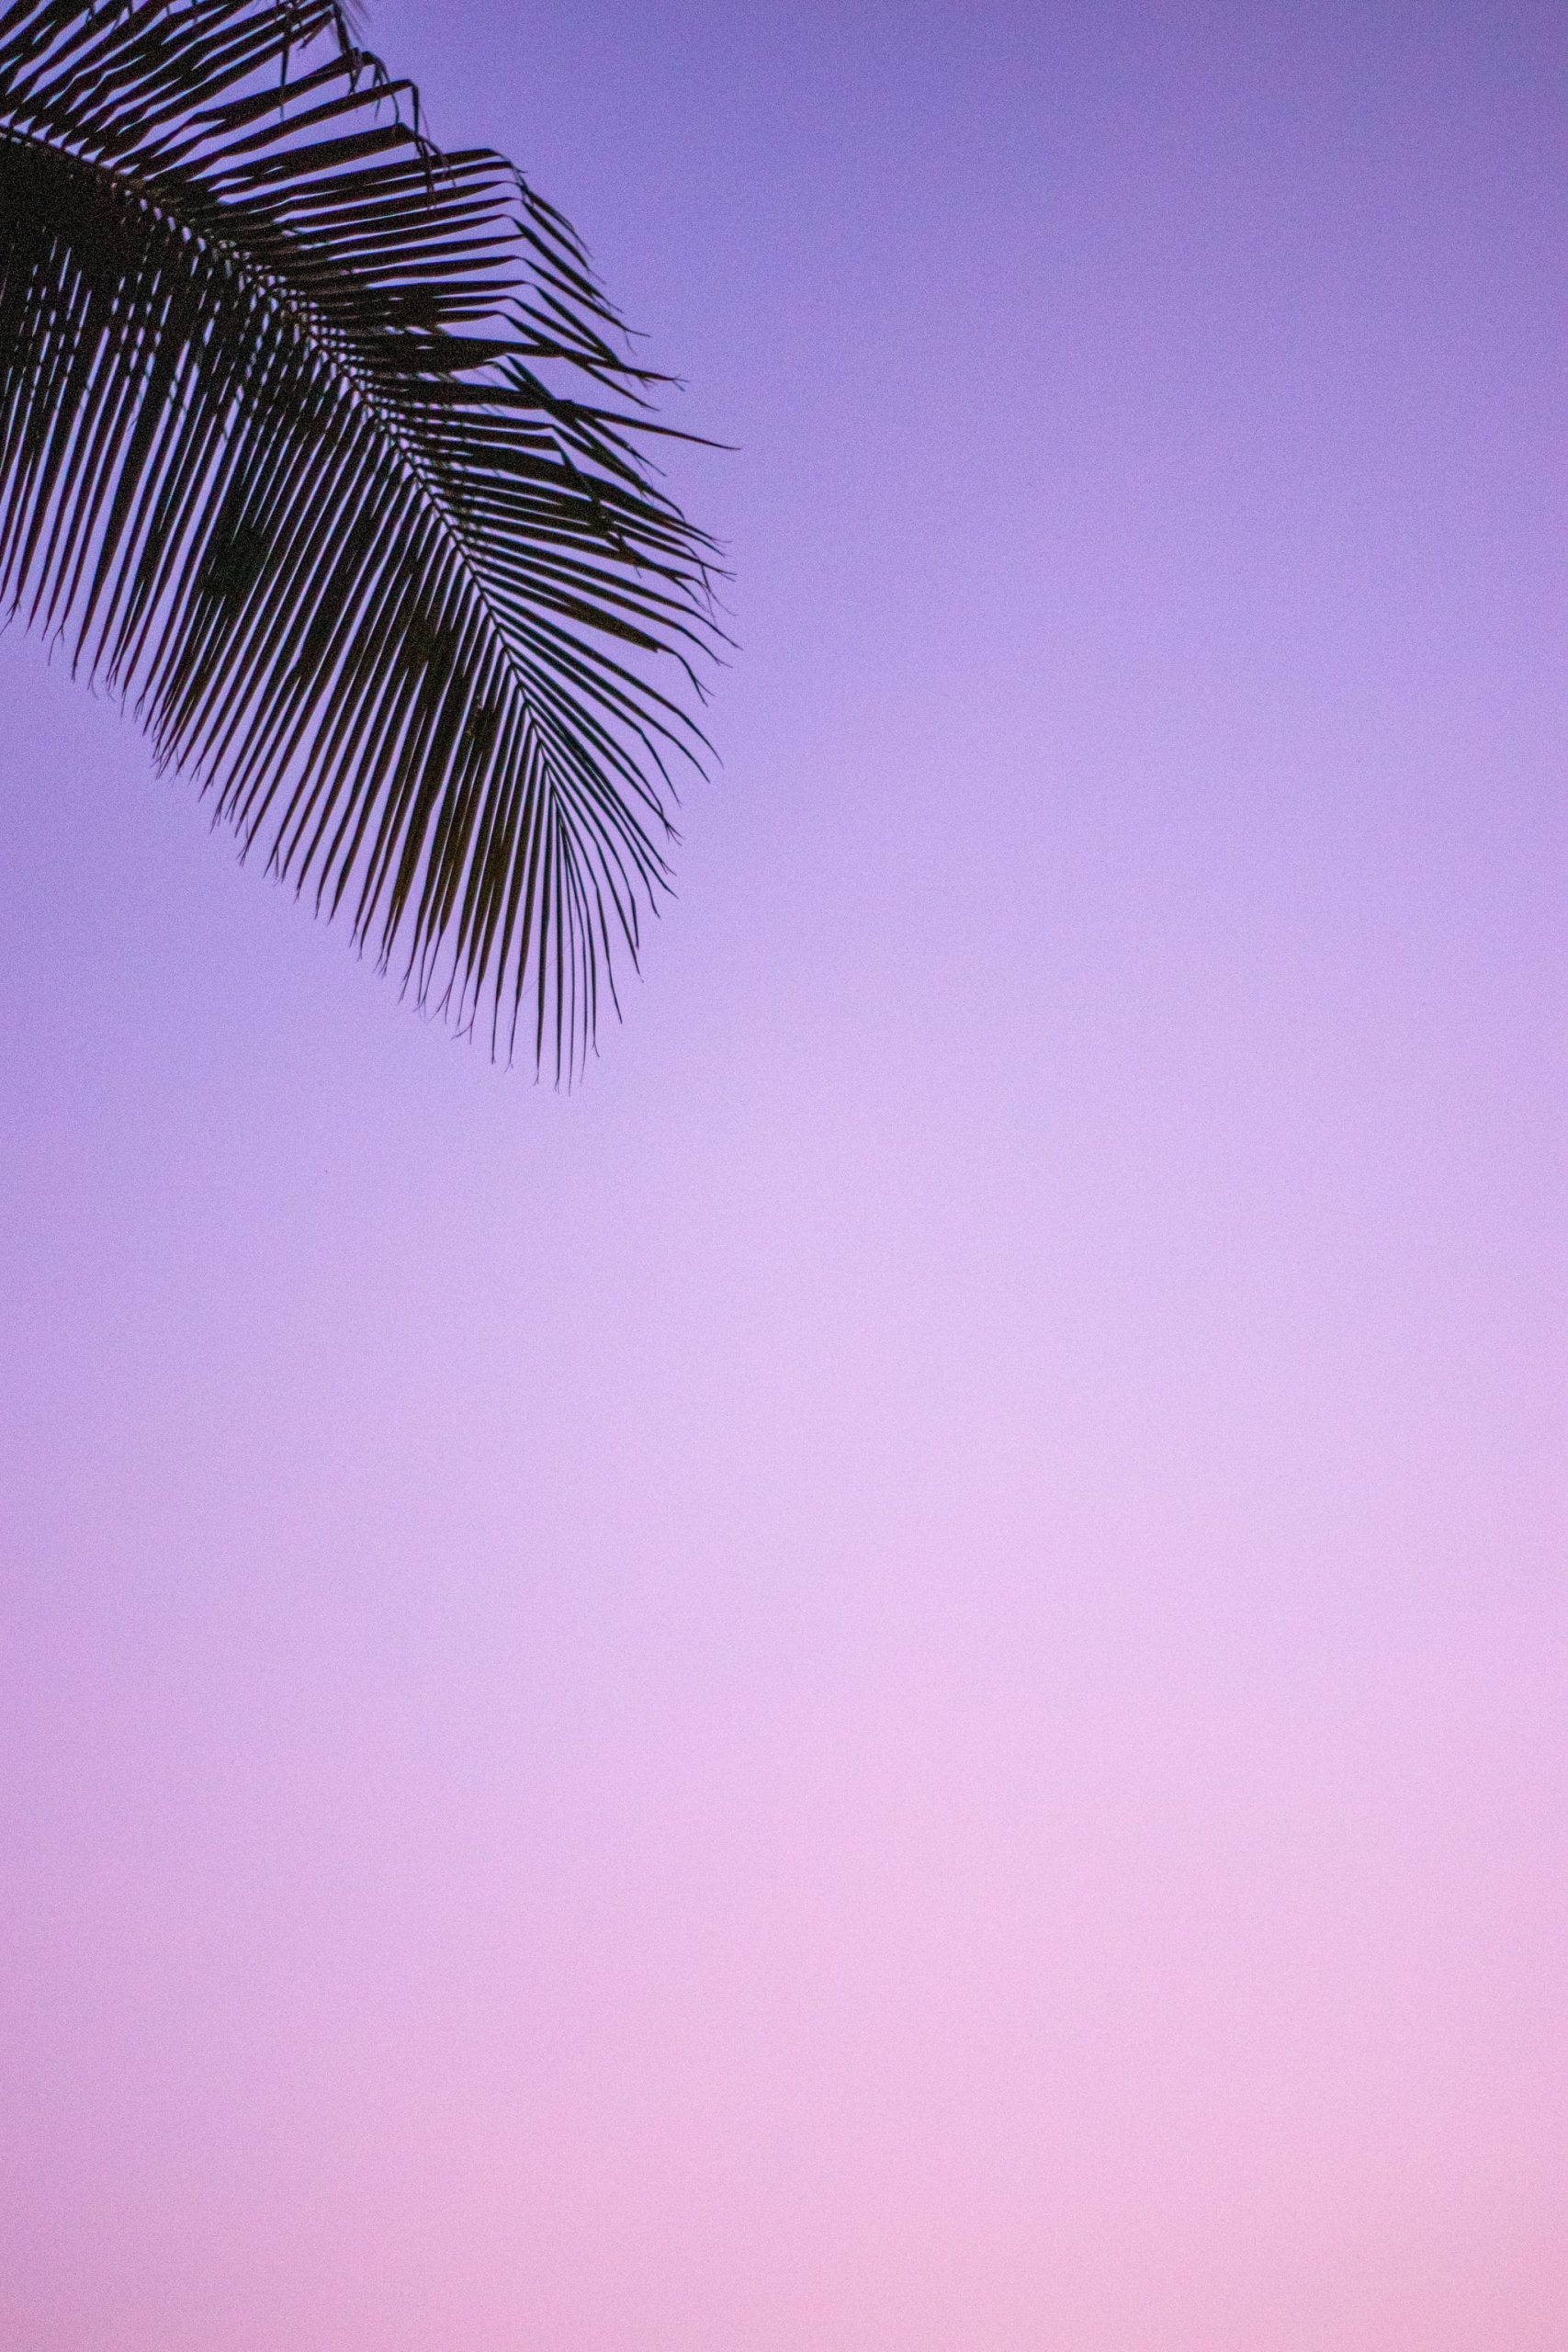 Tropical iPhone Wallpaper